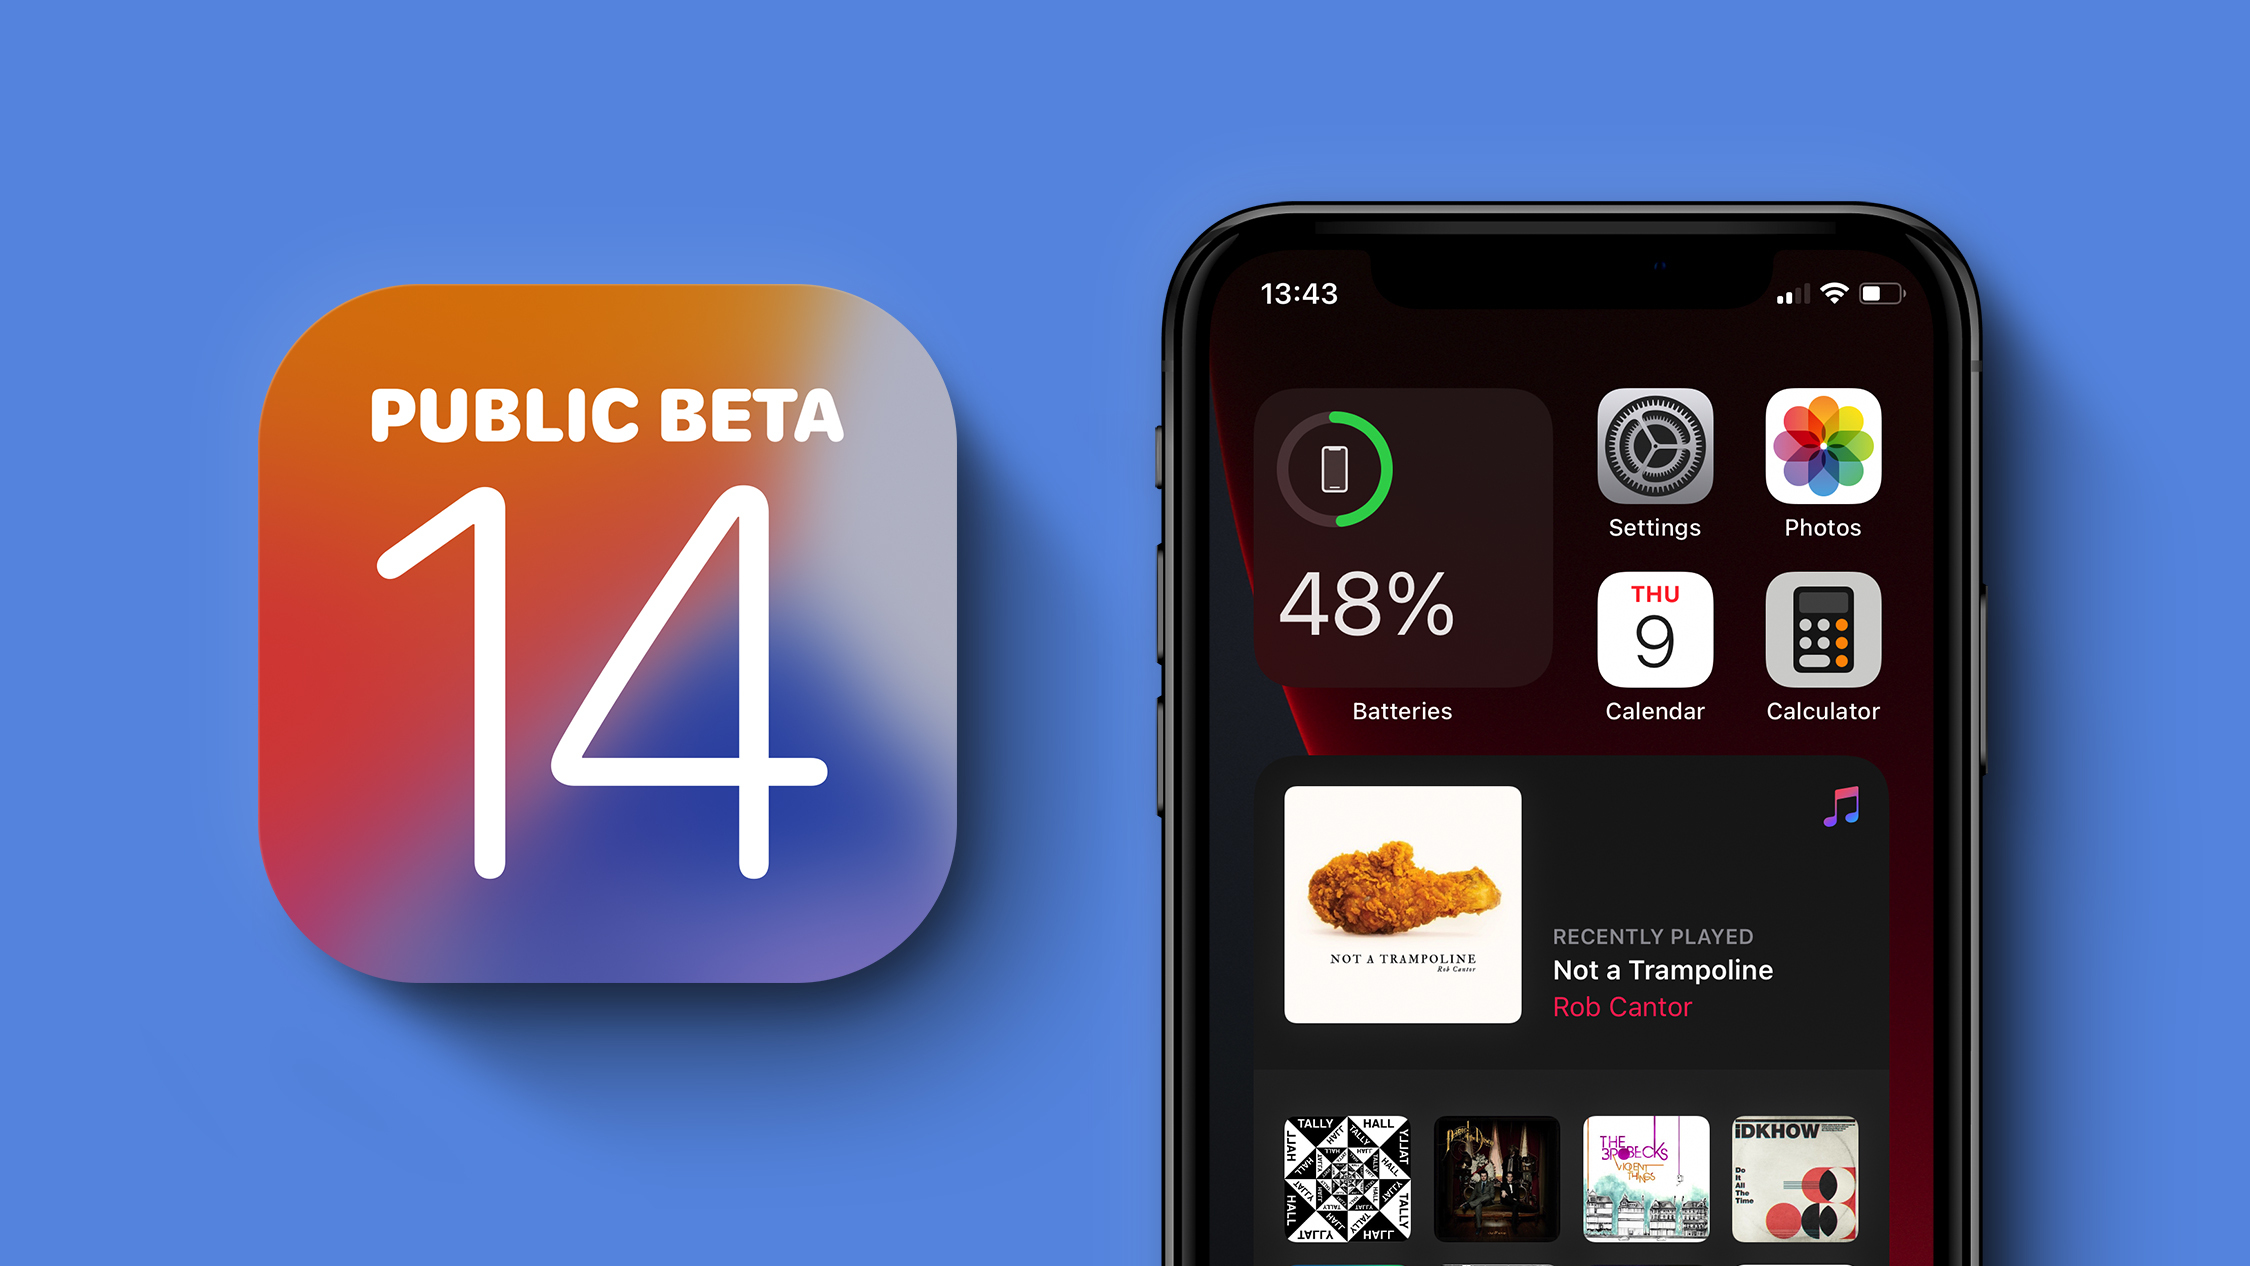 Top Stories: iOS 14 Public Beta, iPhone 12 Size Comparison, 14-Inch MacBook Pro Rumors